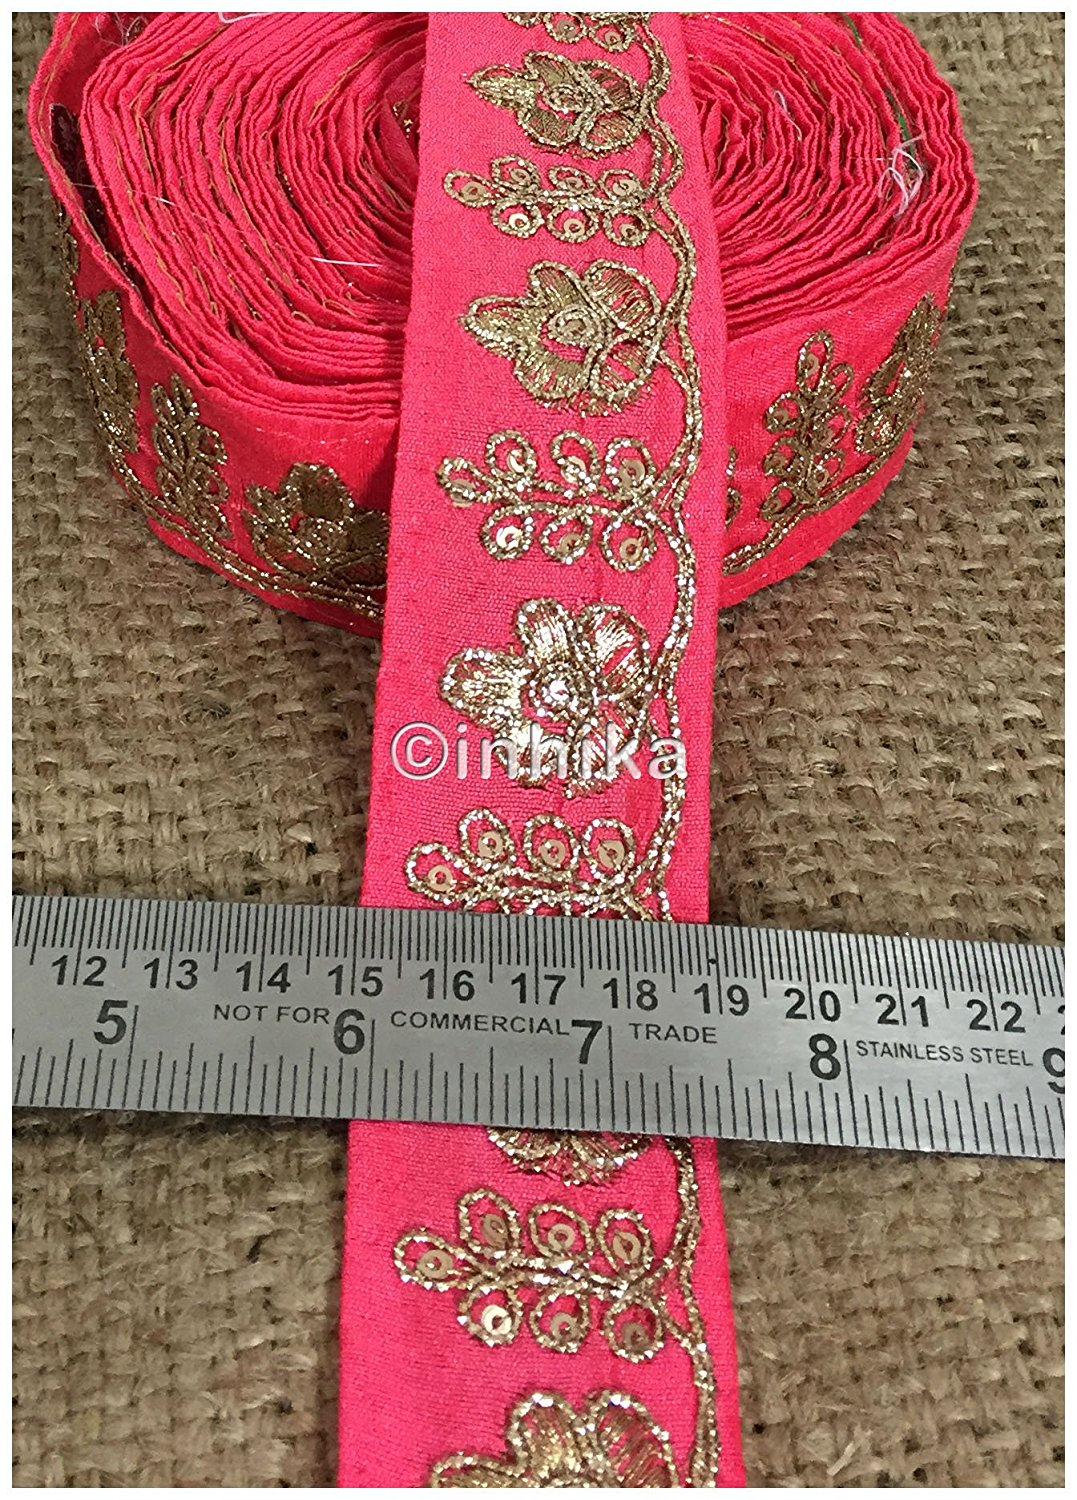 lace trim fabric where to buy fringe for clothing Peach, Embroidery, 2 Inch Wide material Cotton Mix, Dupion